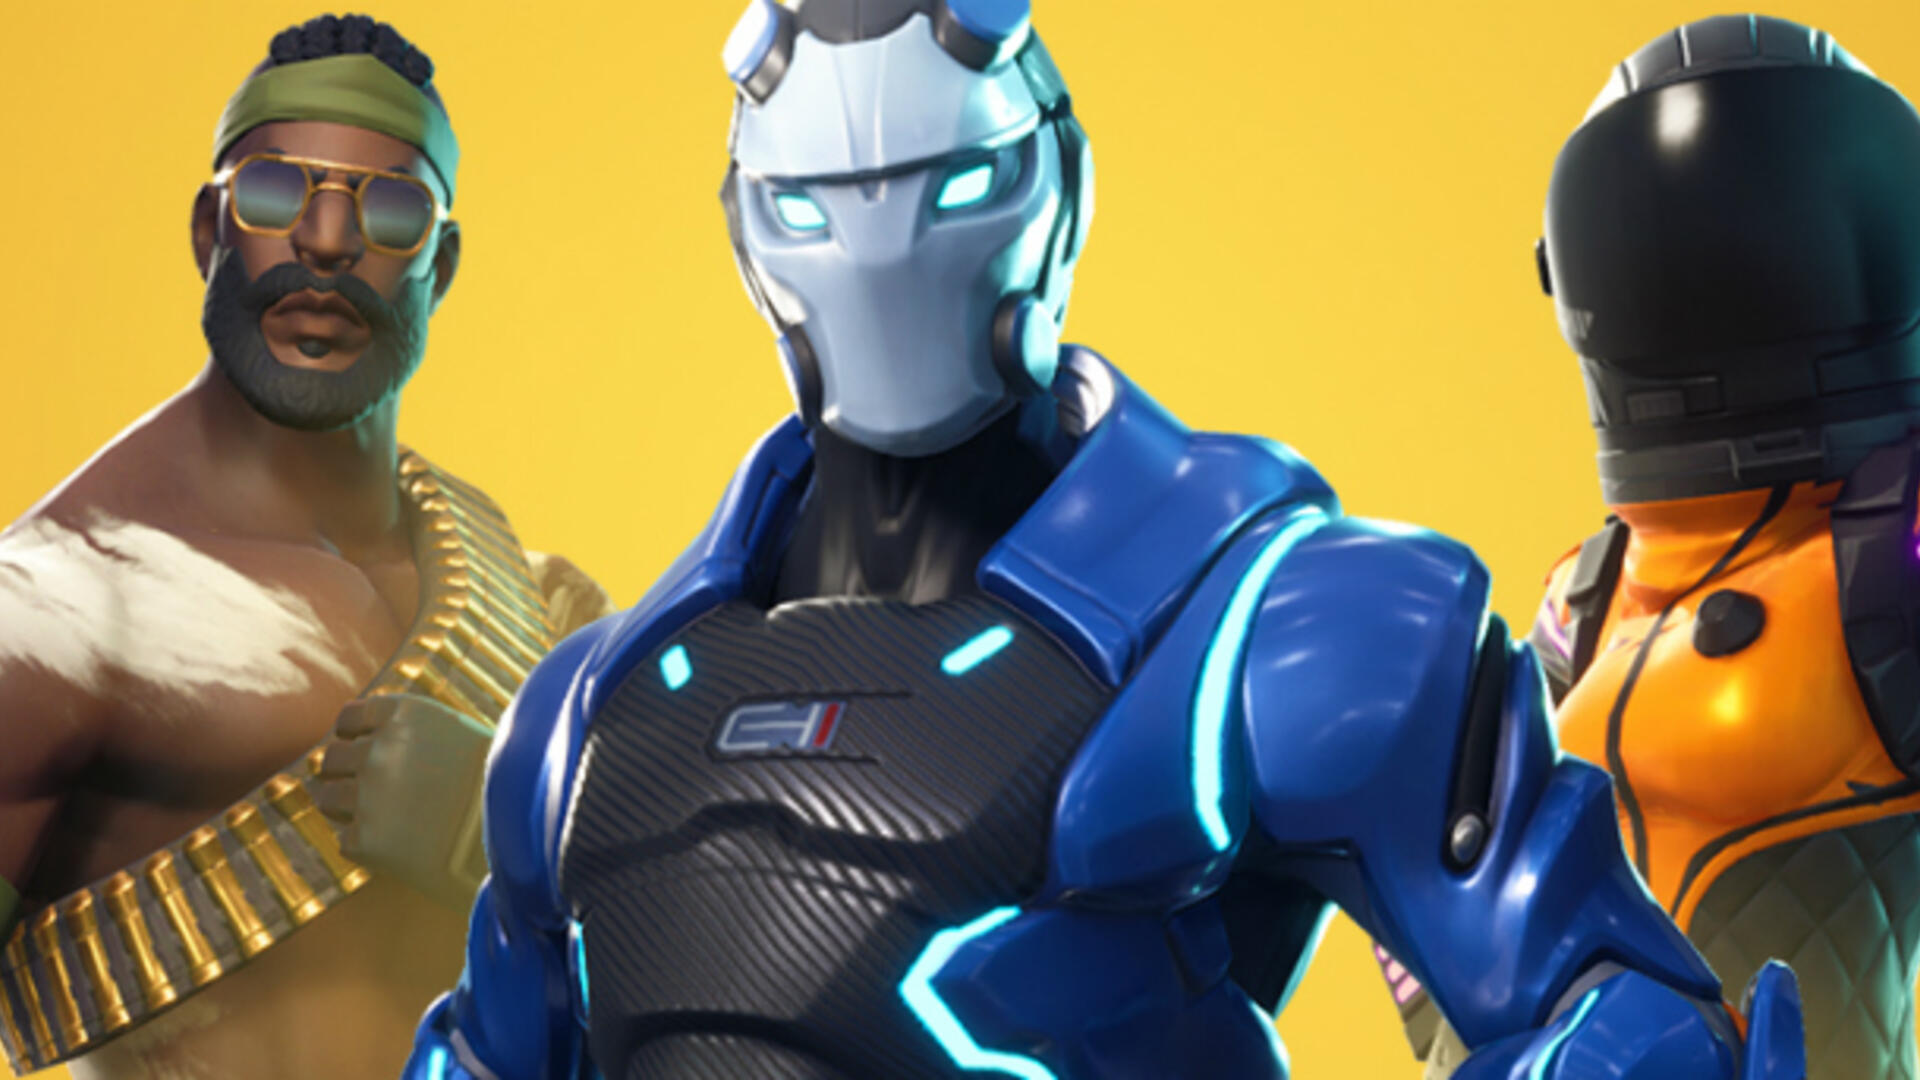 Datamine Uncovers an Update for Fortnite on Switch